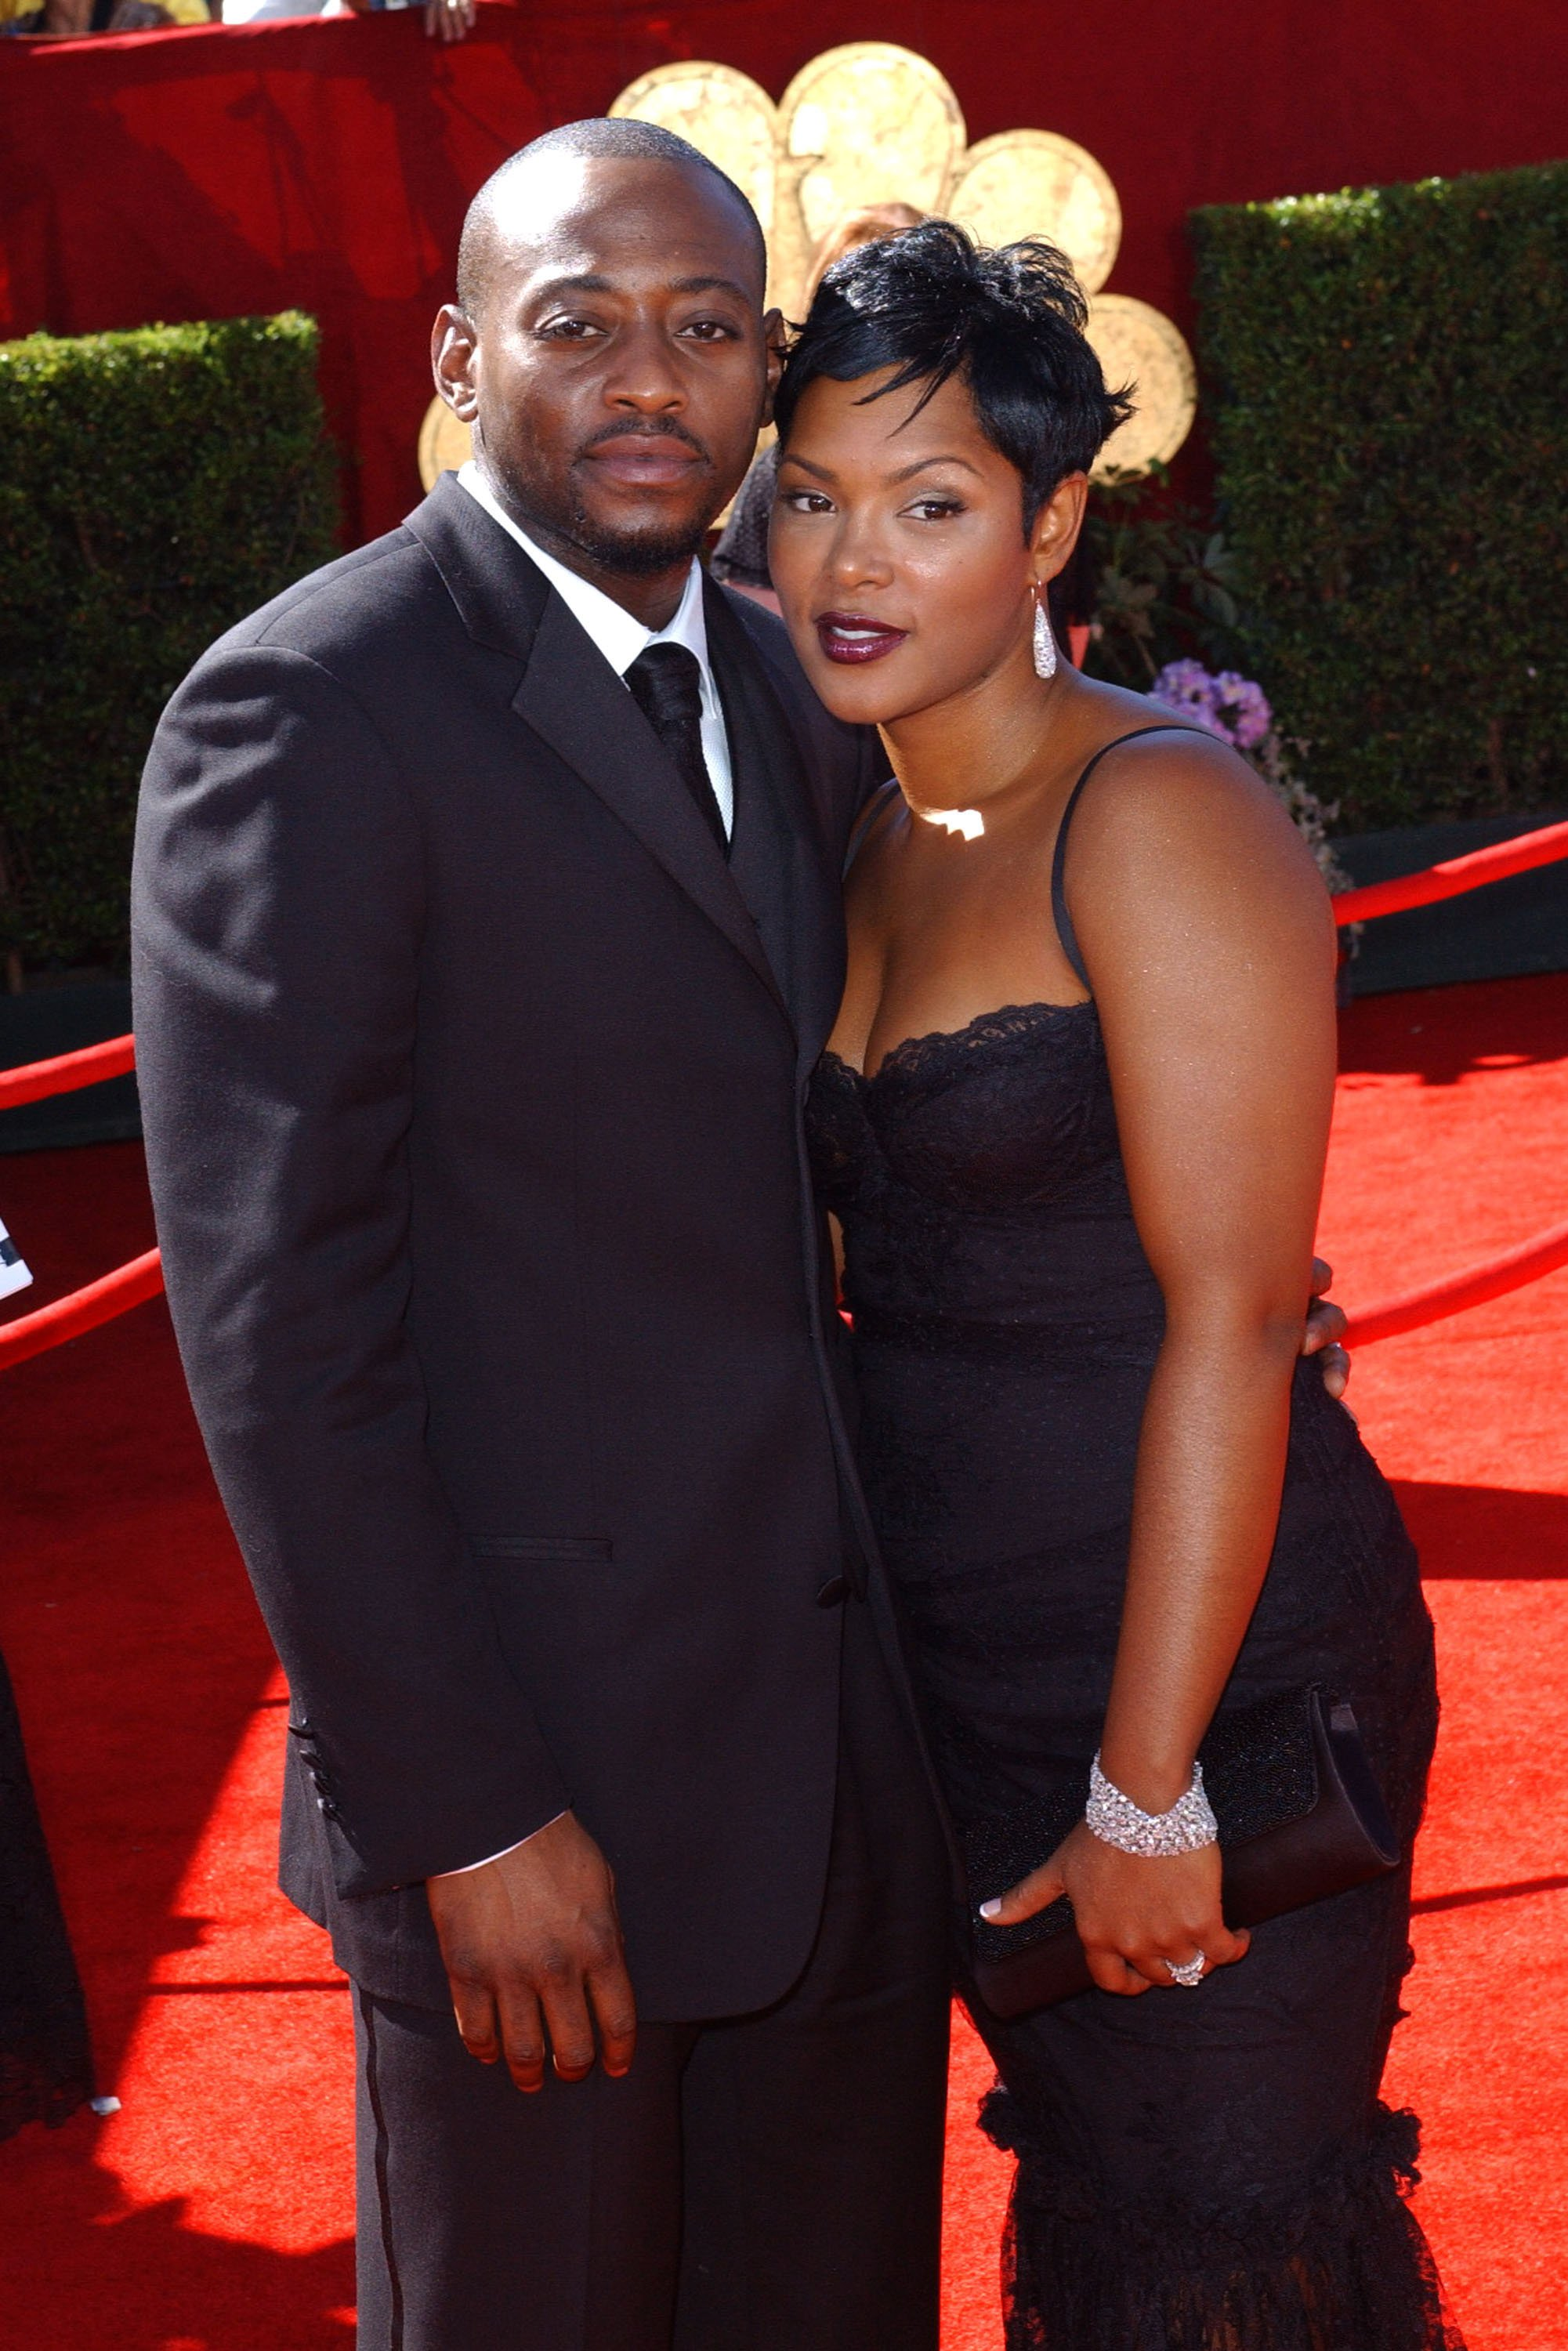 Omar Epps and wife Keisha Epps at the Shrine Auditorium in Los Angeles, CA  | Photo: Getty Images